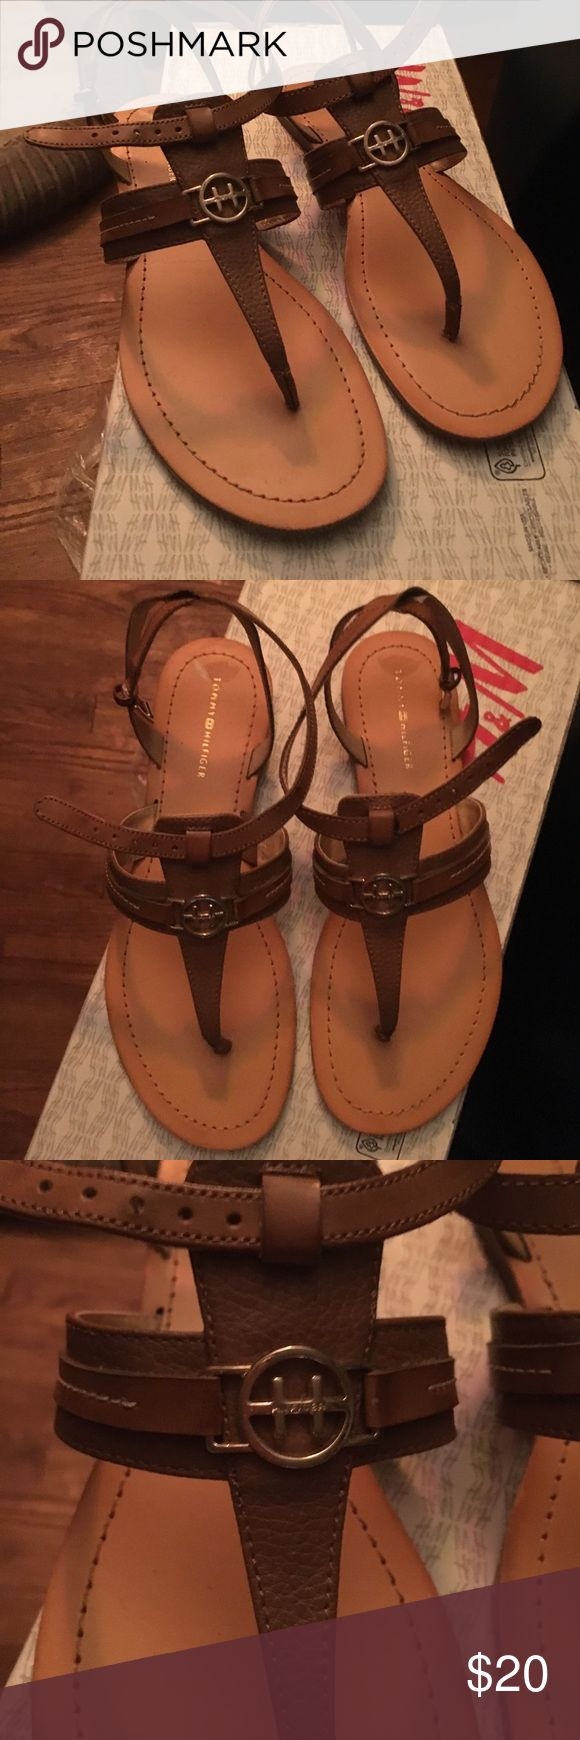 Tommy Hilfiger sandals  size 7.5 worn once‼️〽️ Sandals for sale Tommy Hilfiger Shoes Sandals